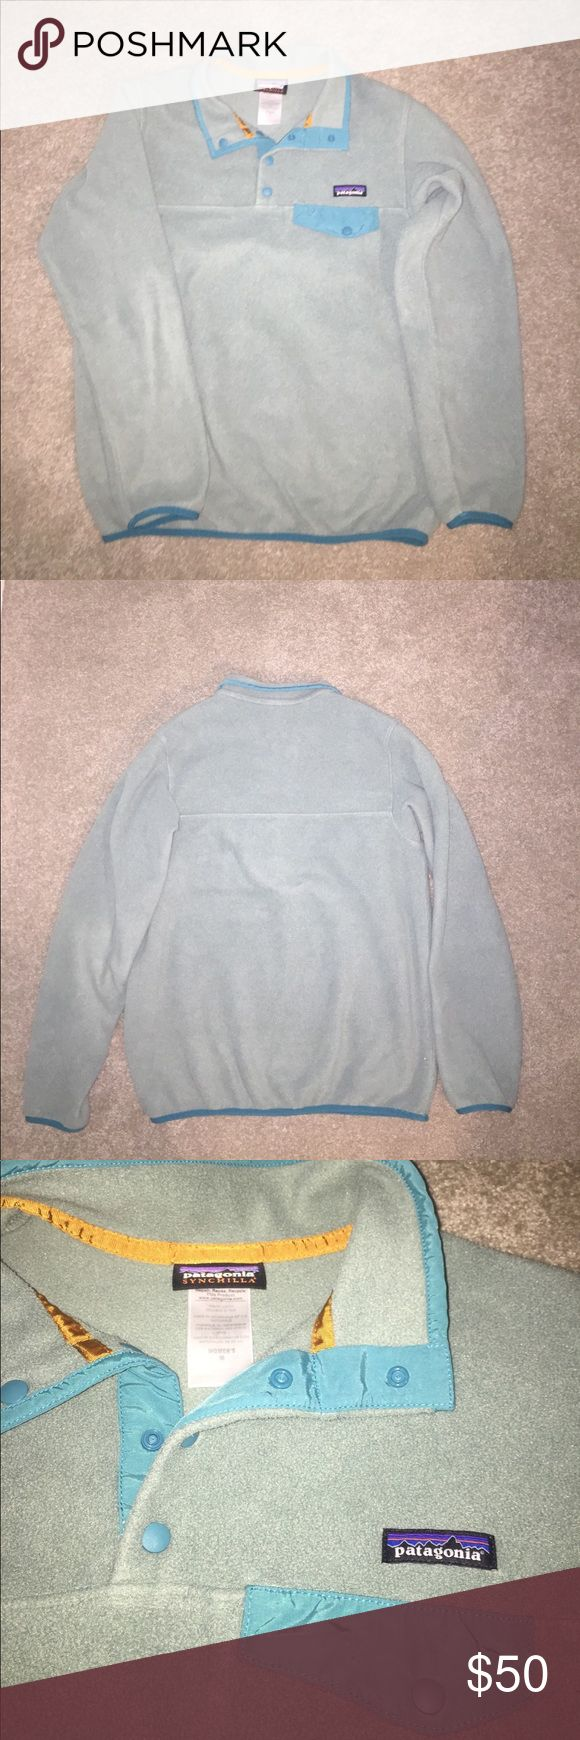 Patagonia Synchilla pullover Patagonia pull over- is greener in person like last picture & in great shape Patagonia Jackets & Coats